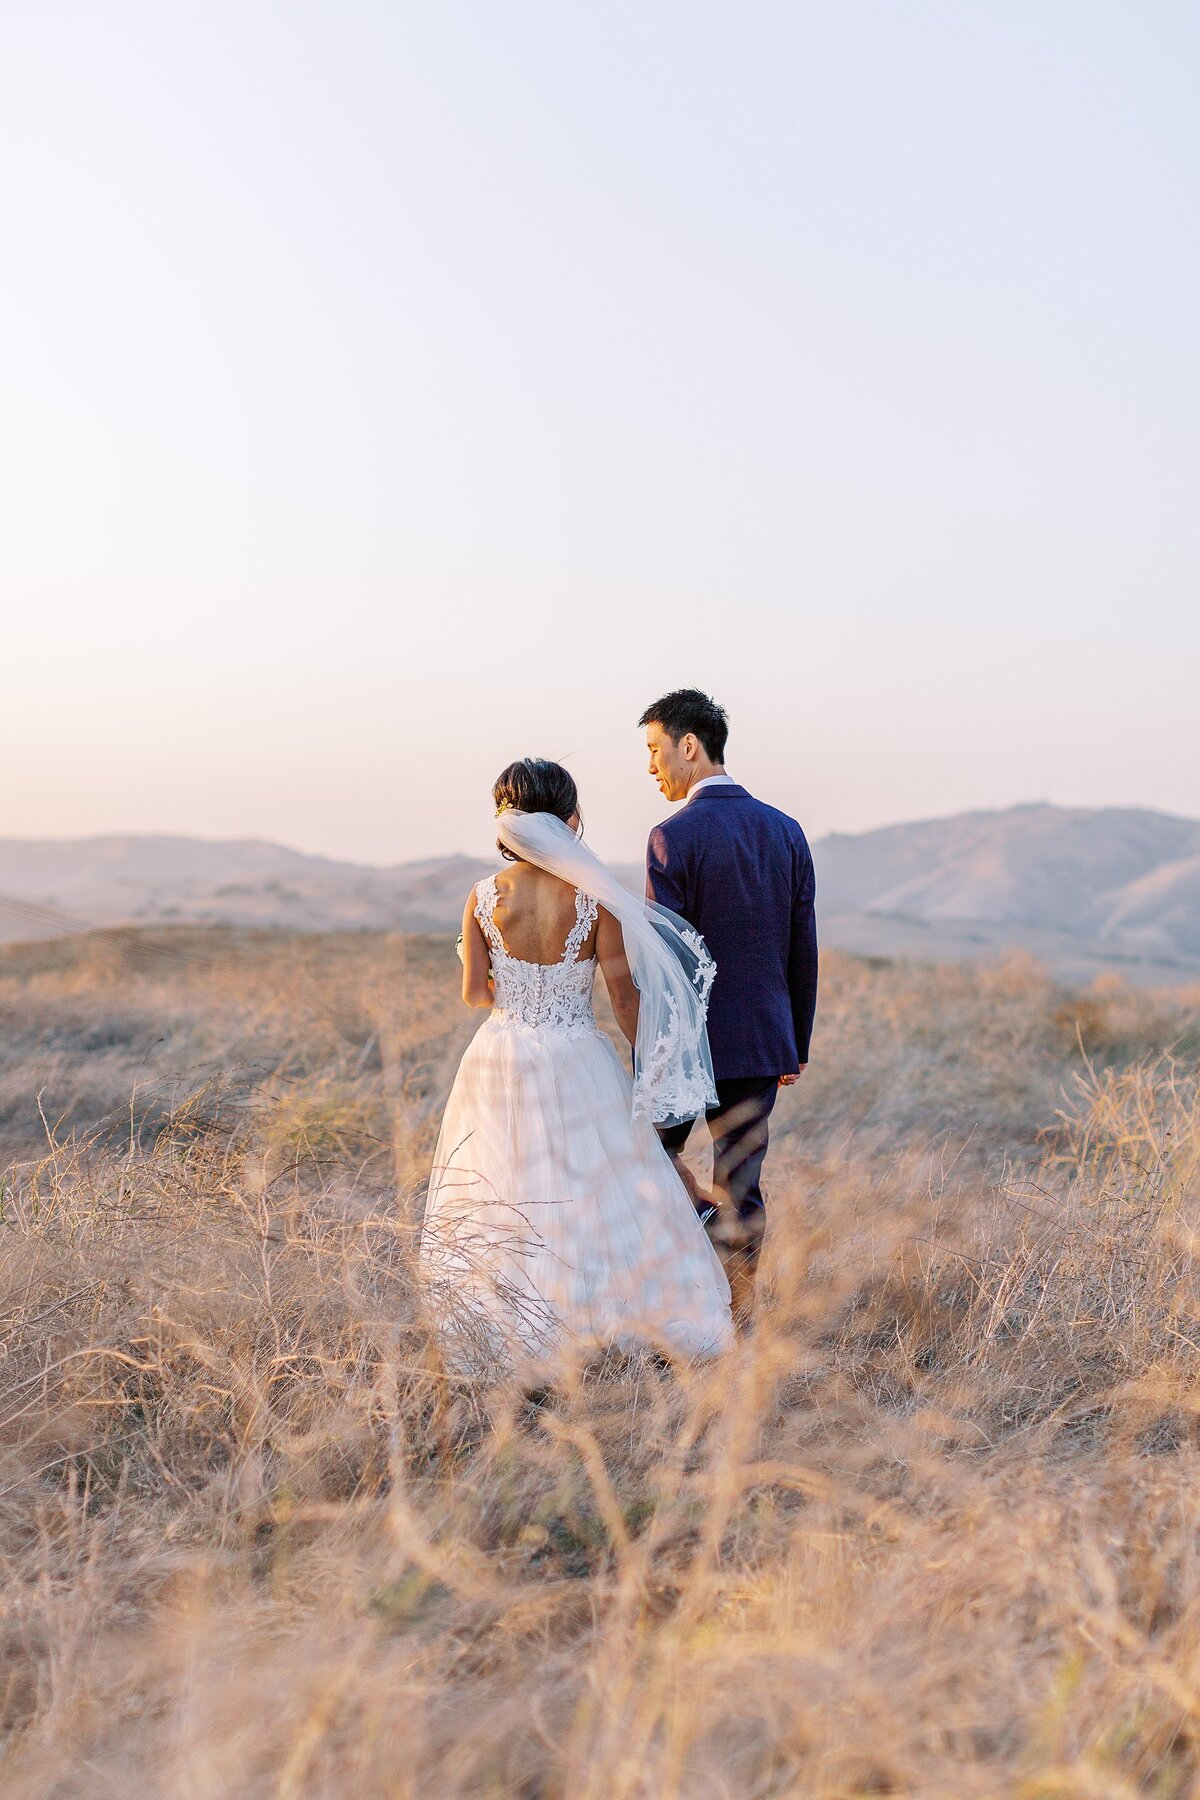 20190928Cammane and Simon's Vineyard Wedding_Nella Terra Cellars_Sunol_Bethany Picone Photography - 298_WEB